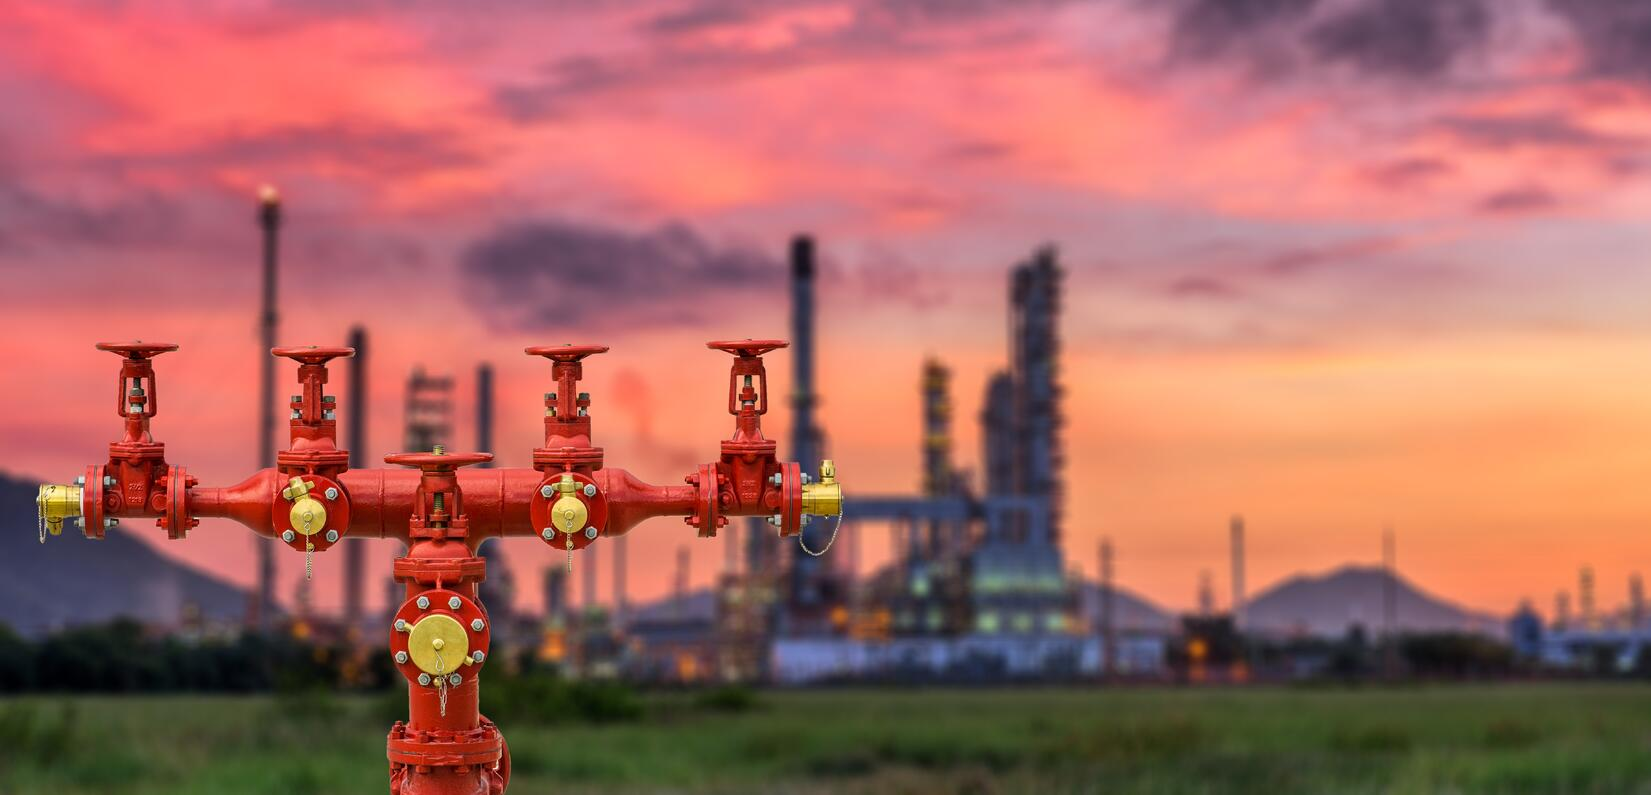 fire hydrant and oil refinery-936131-edited.jpg